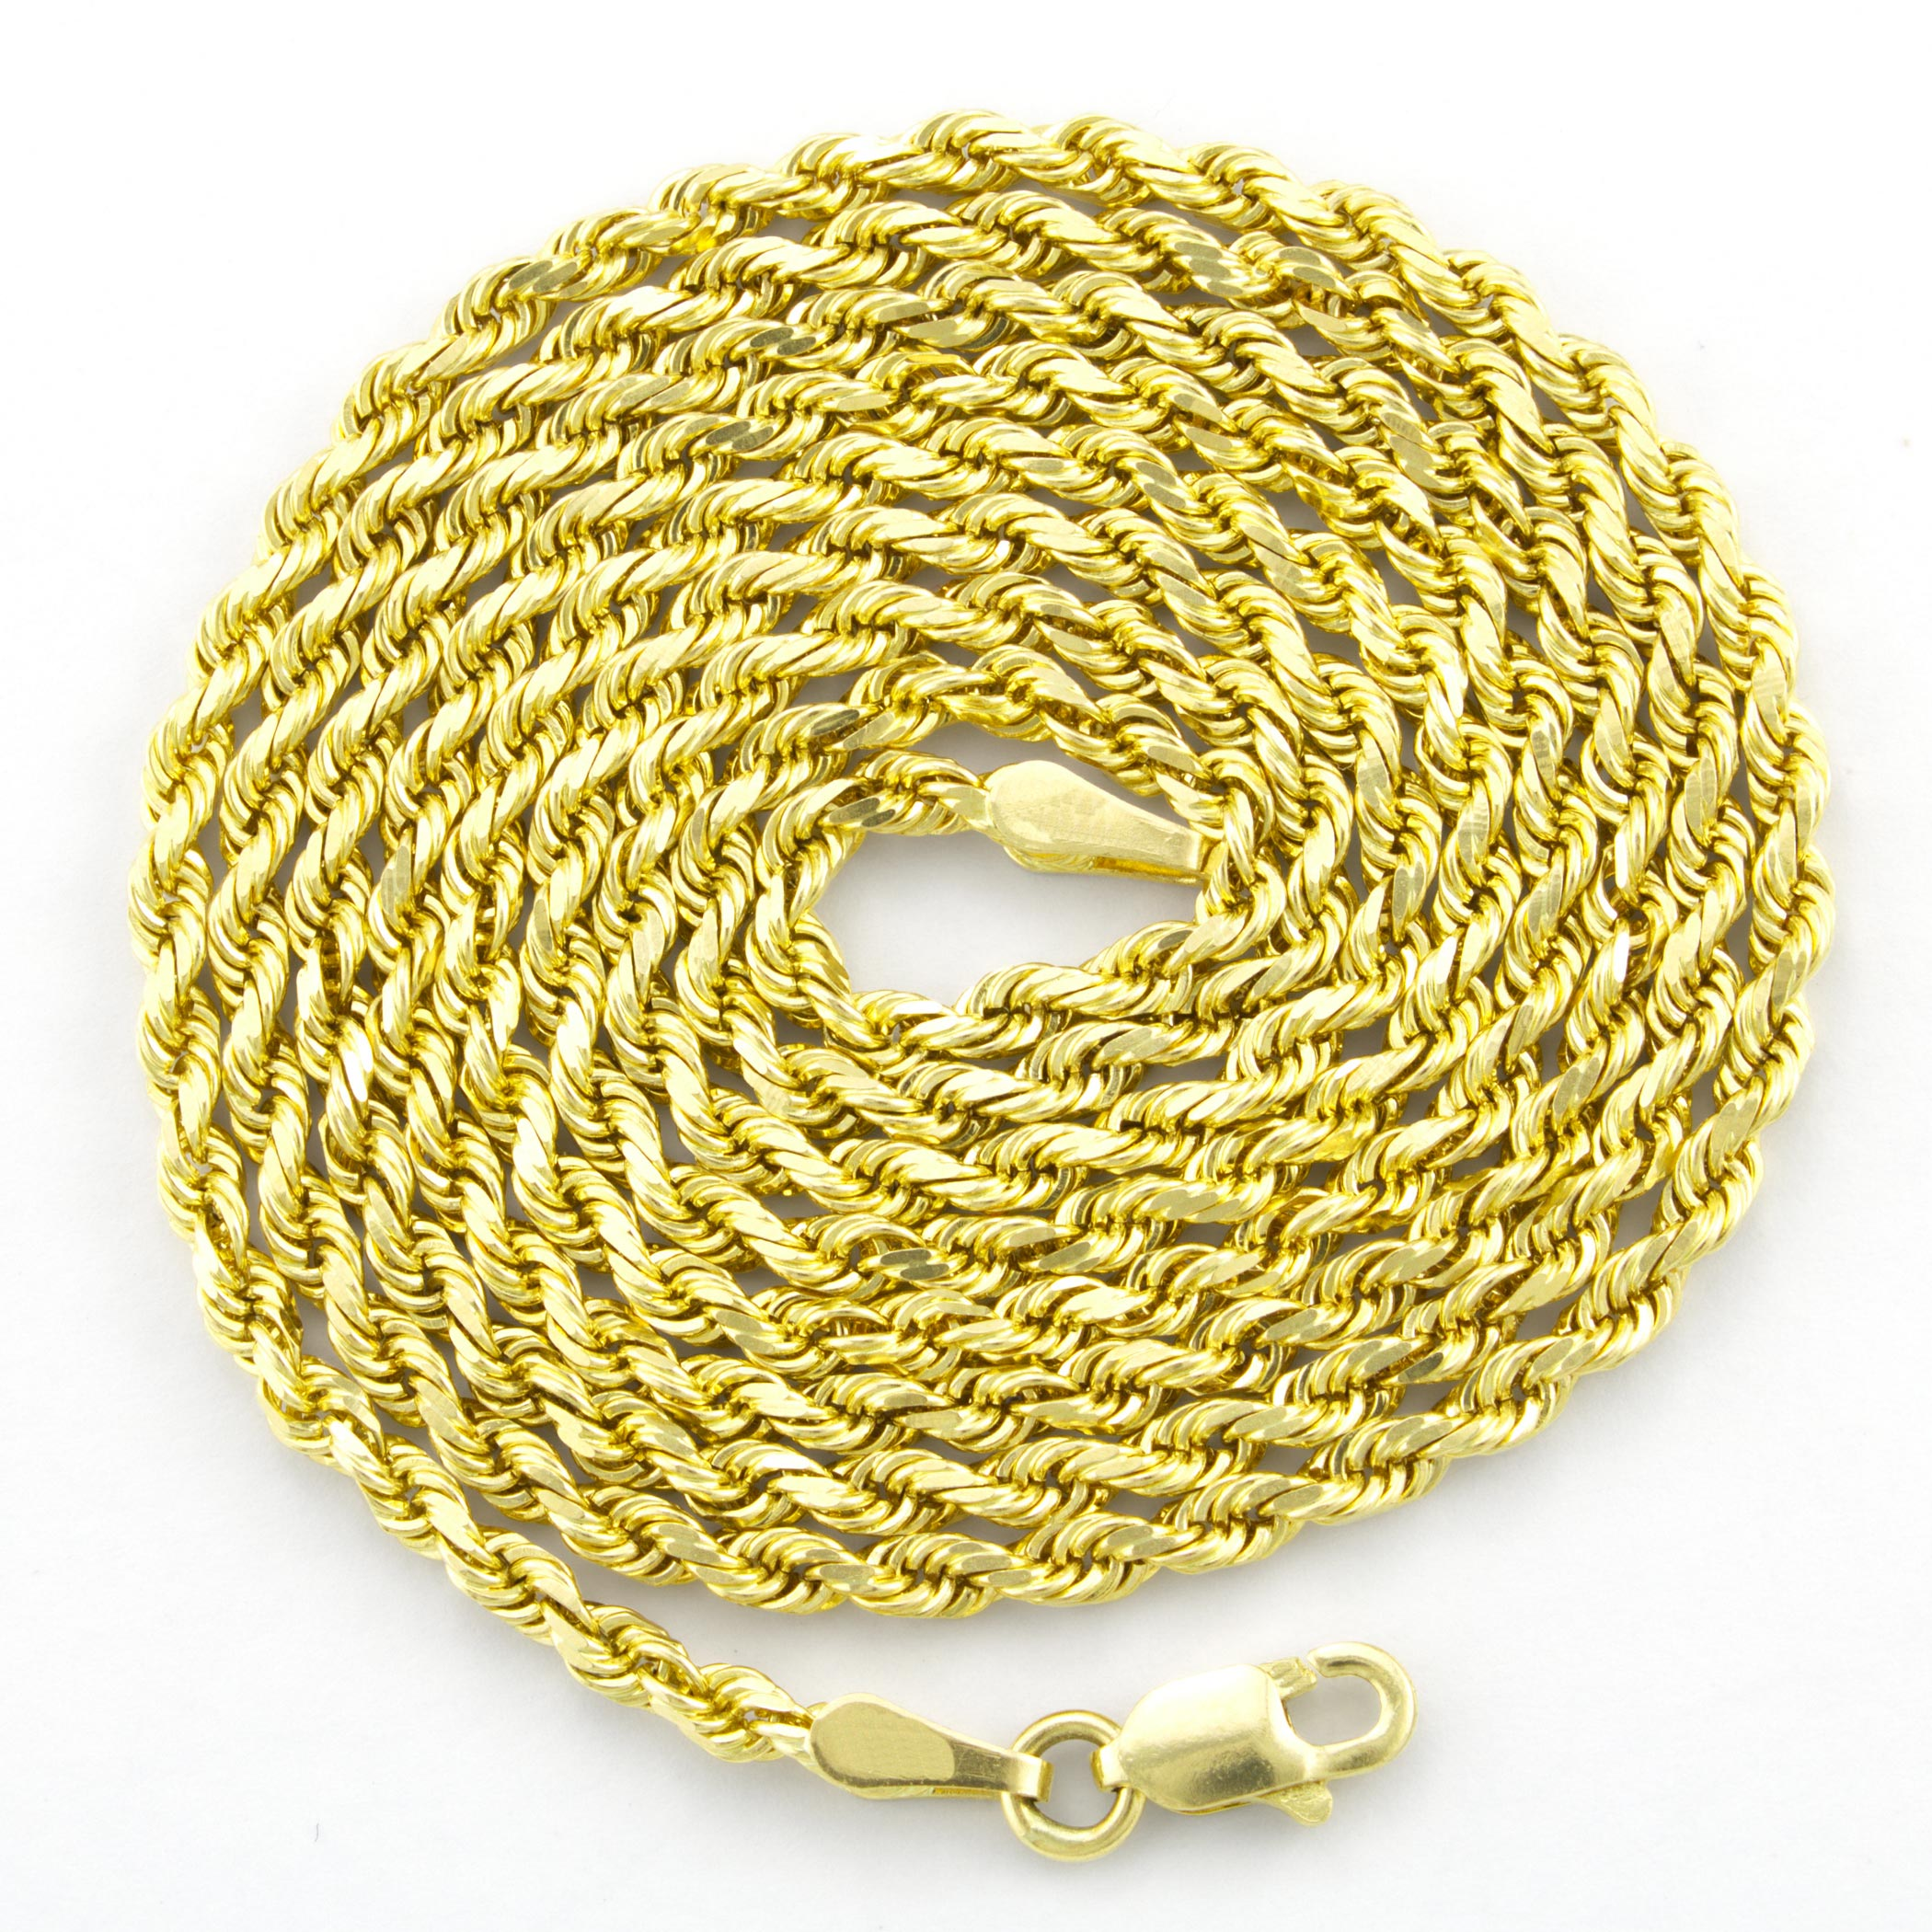 Real-14K-Yellow-Gold-2-5mm-Diamond-Cut-Rope-Chain-Link-Bracelet-Anklet-7-034-8-034-9-034 thumbnail 20